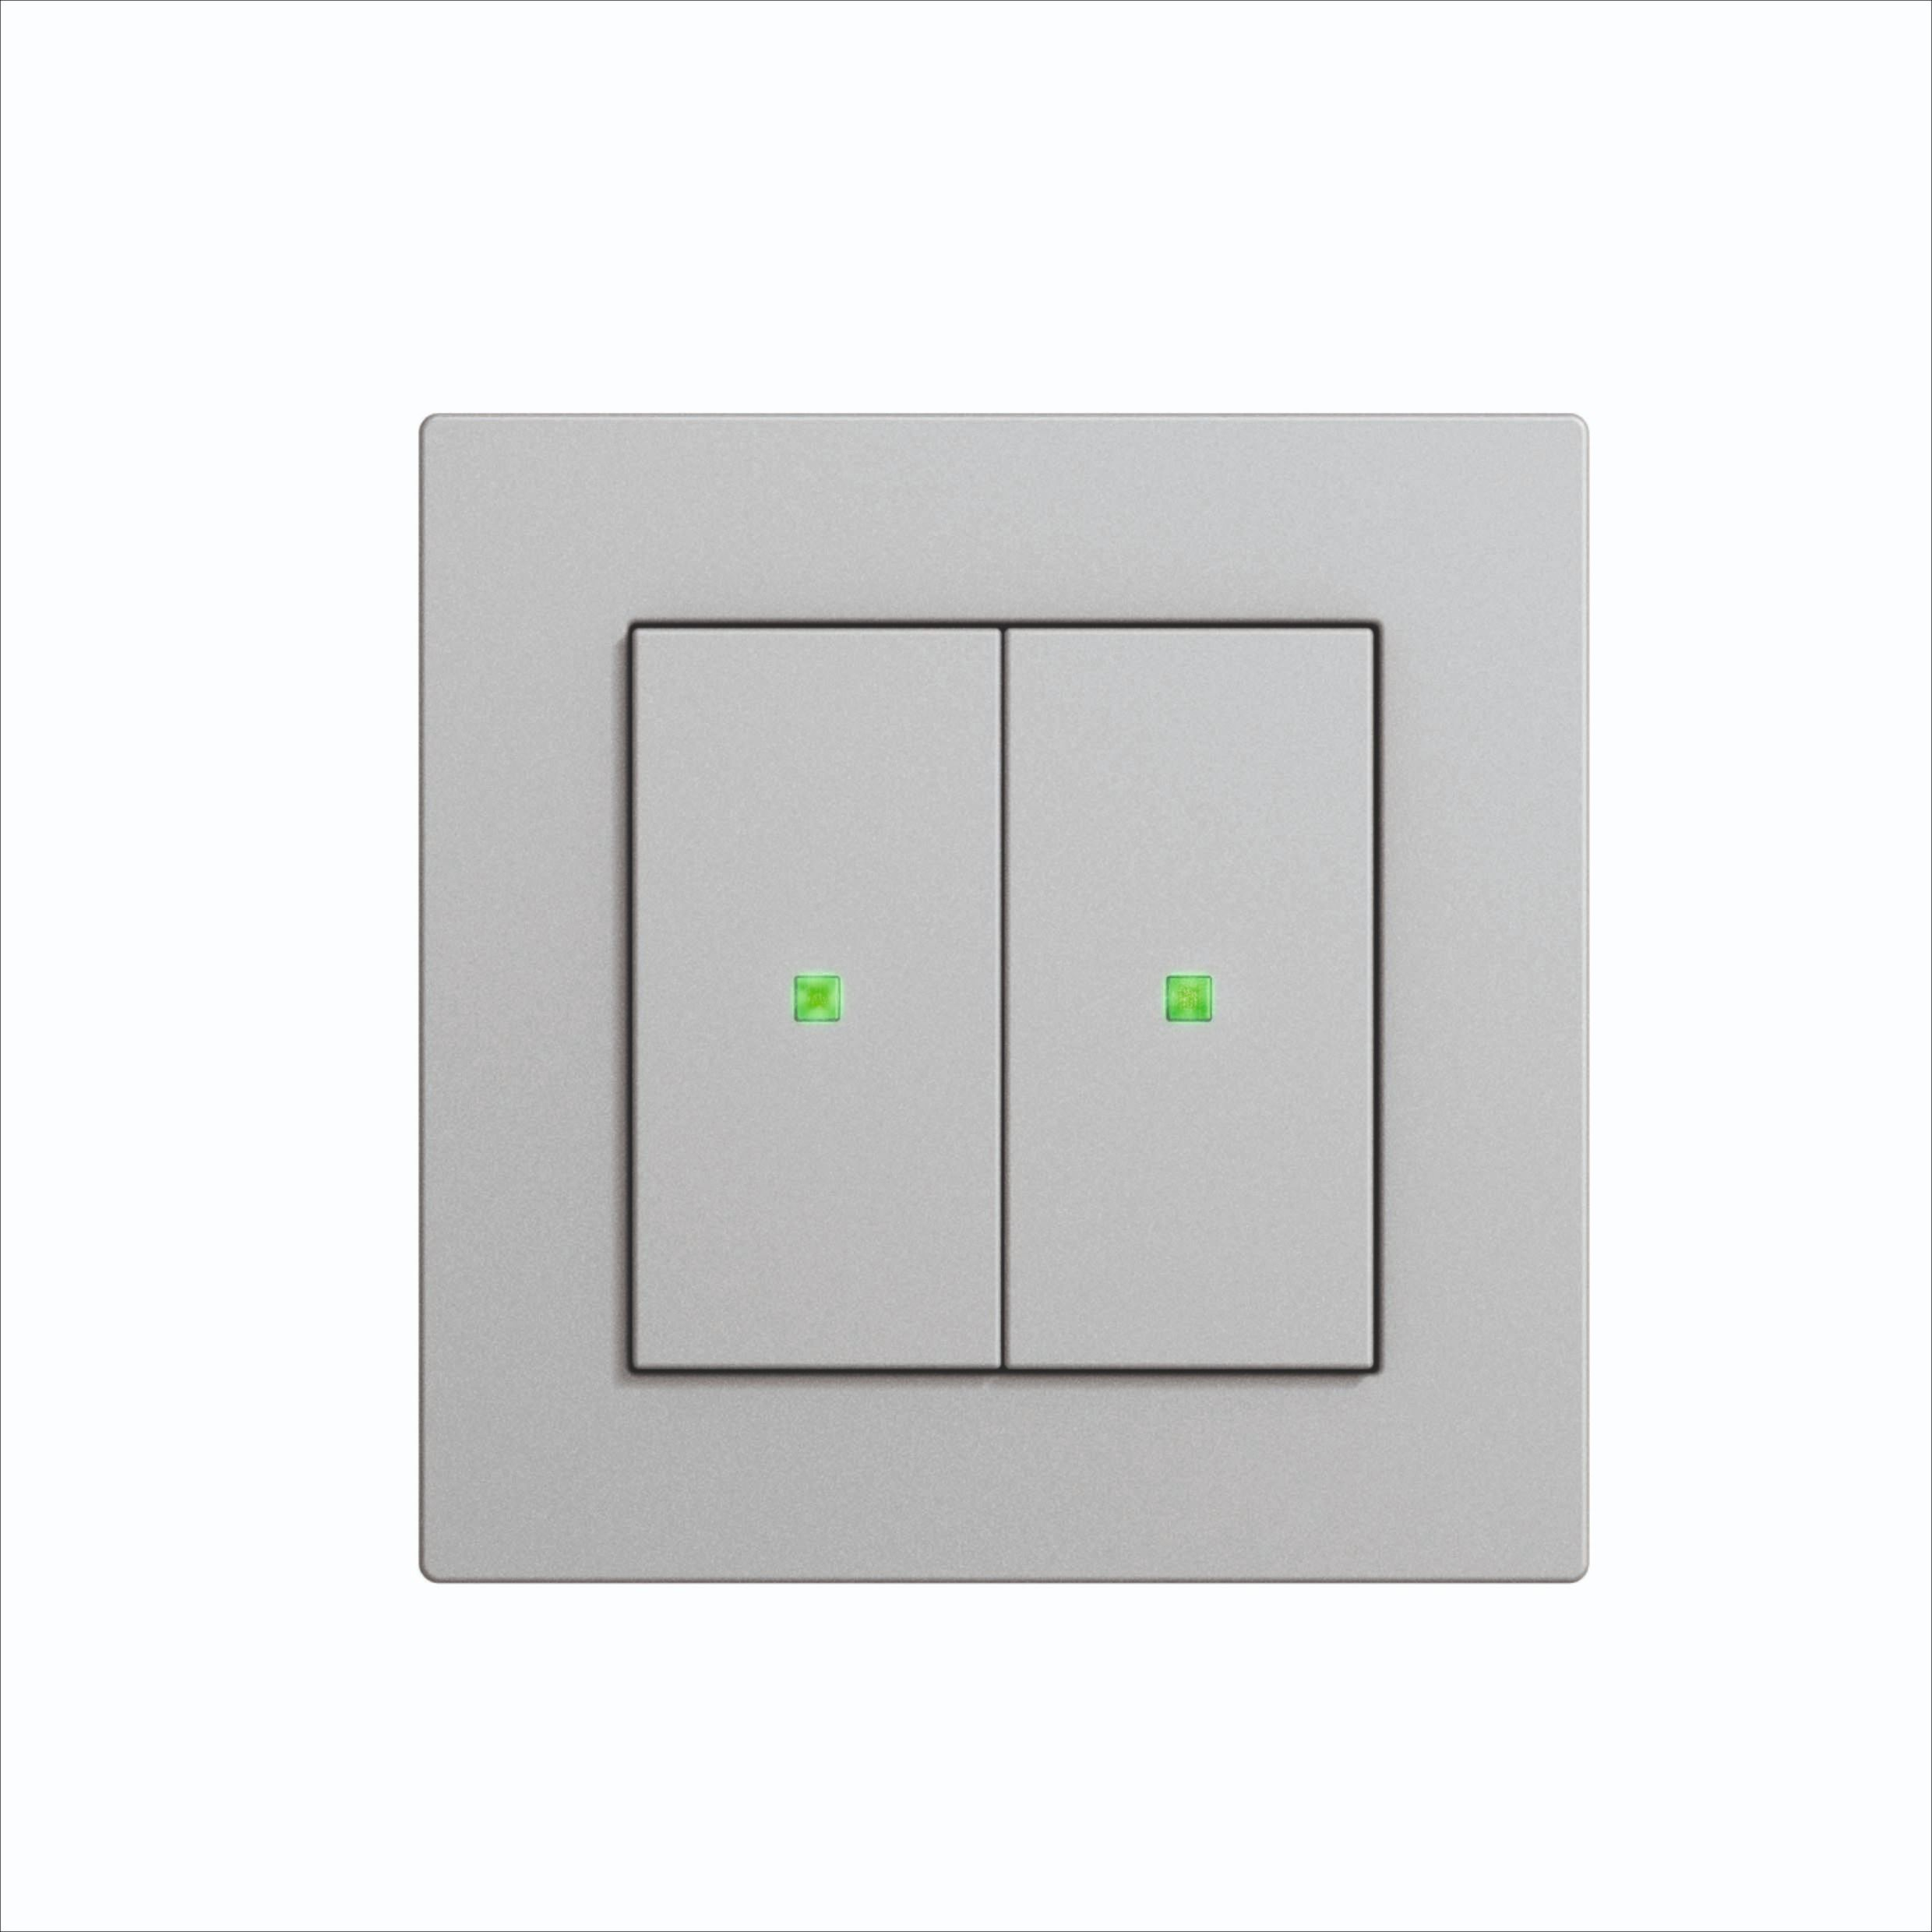 Classic Control Of Smart Technology Gira Knx Button In 2020 Night Light Smart Home Solutions